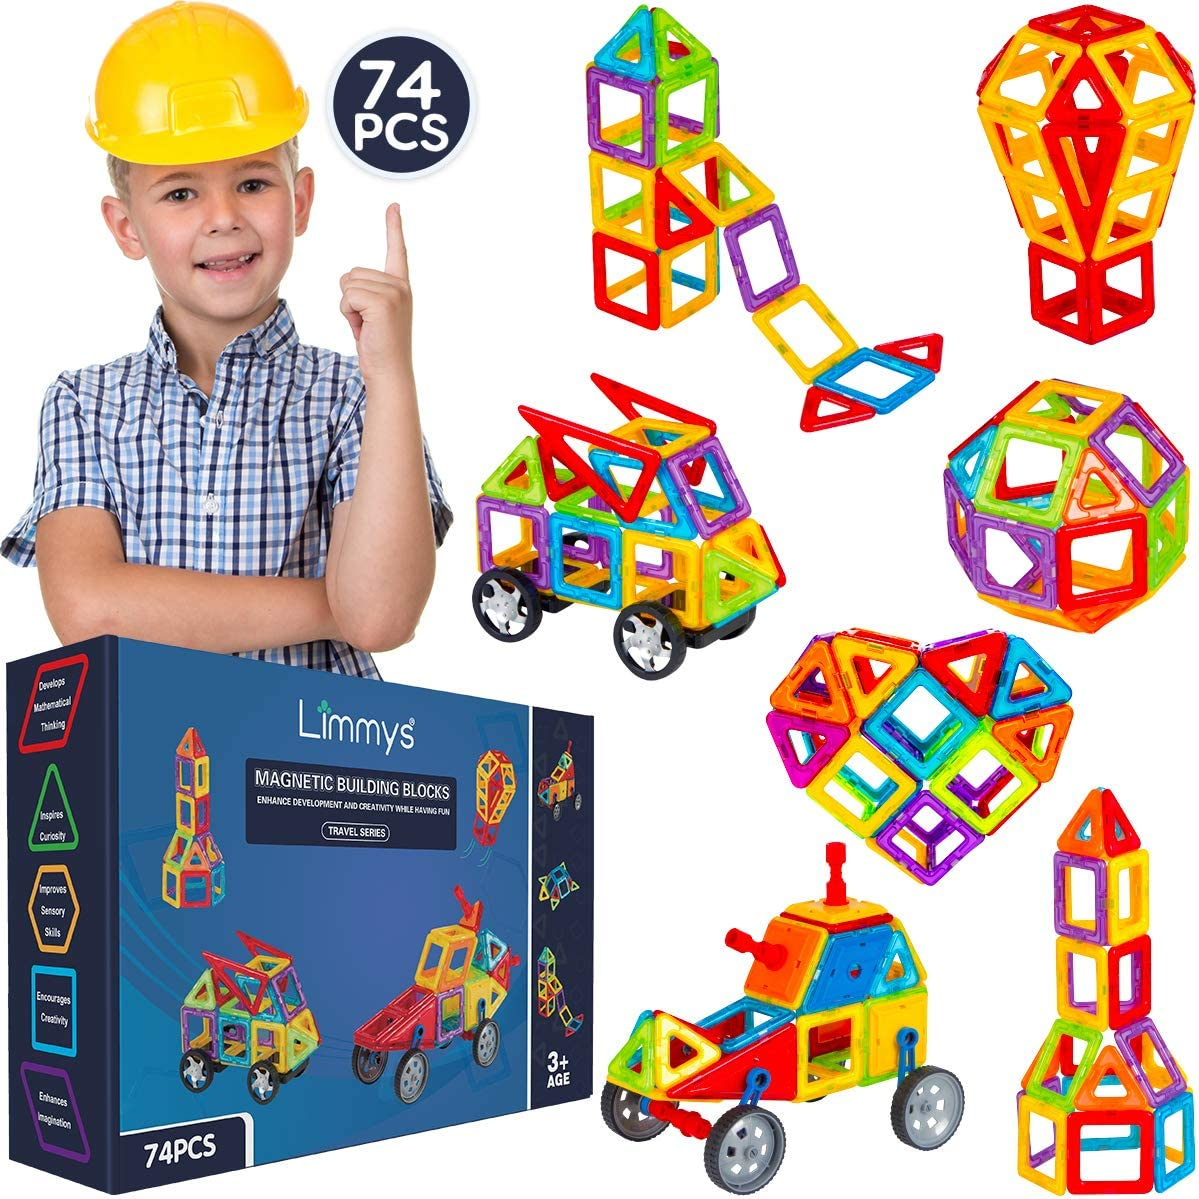 Limmys Magnetic Building Blocks